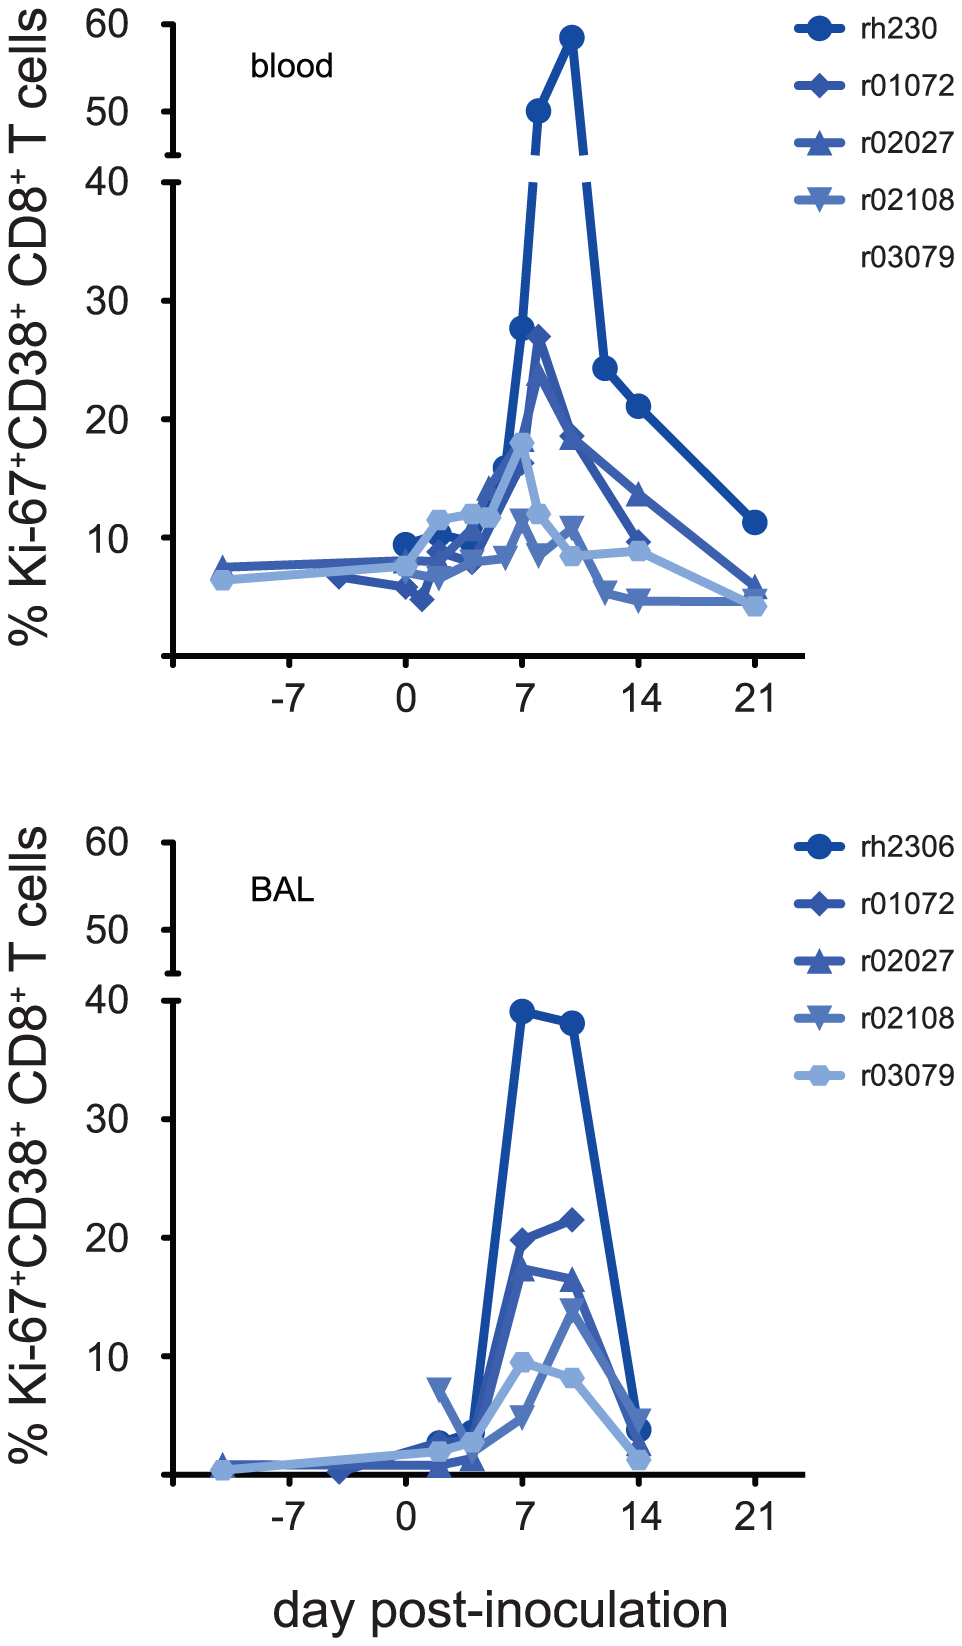 Activated CD8+ T cells appear in blood and lung within 7 days of inoculation with seasonal influenza virus K173.